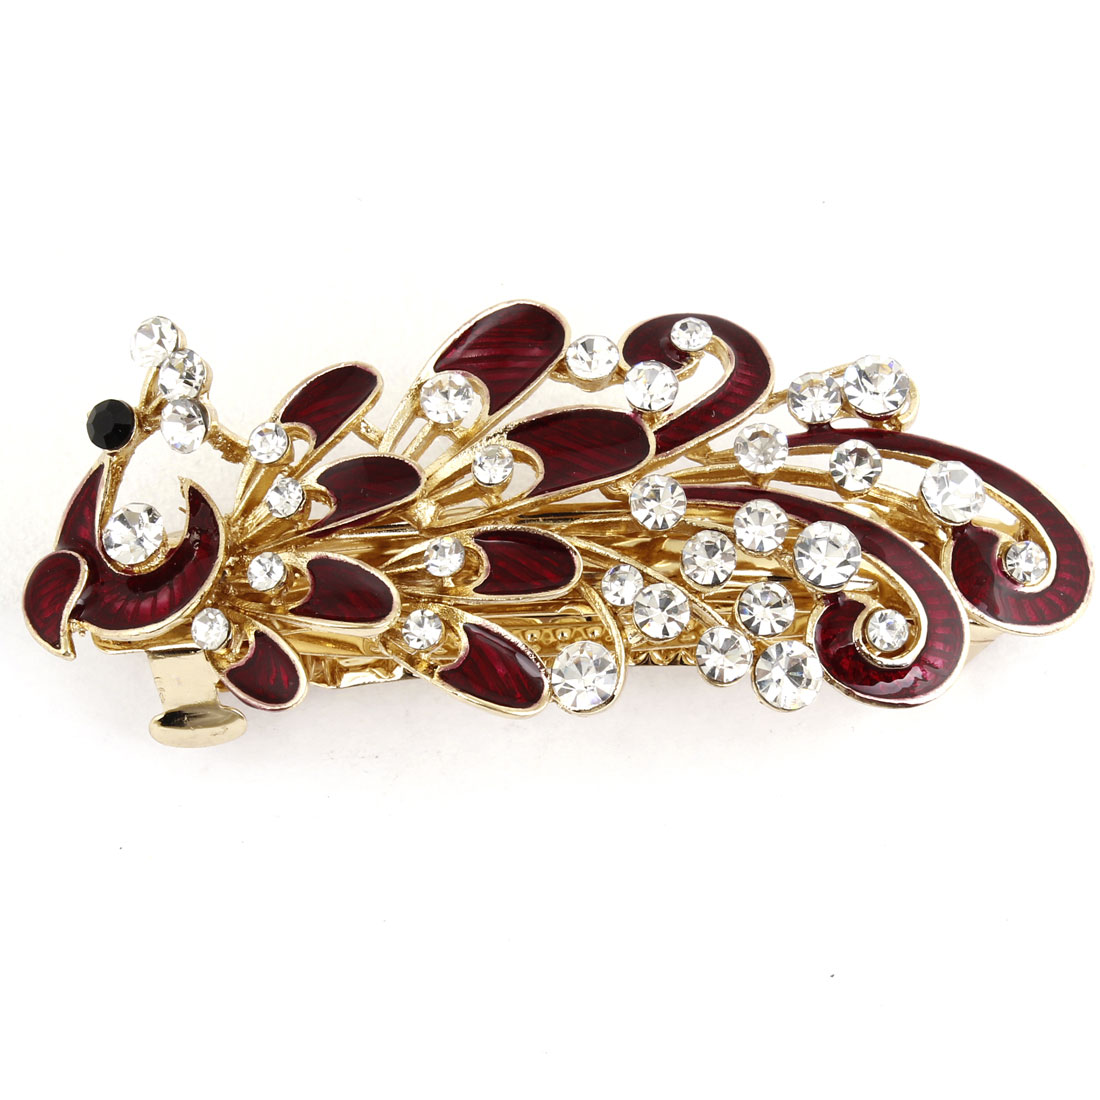 Ladies Fuax Rhinestones Inlaid French Clip Barrette Hairclip Red Gold Tone